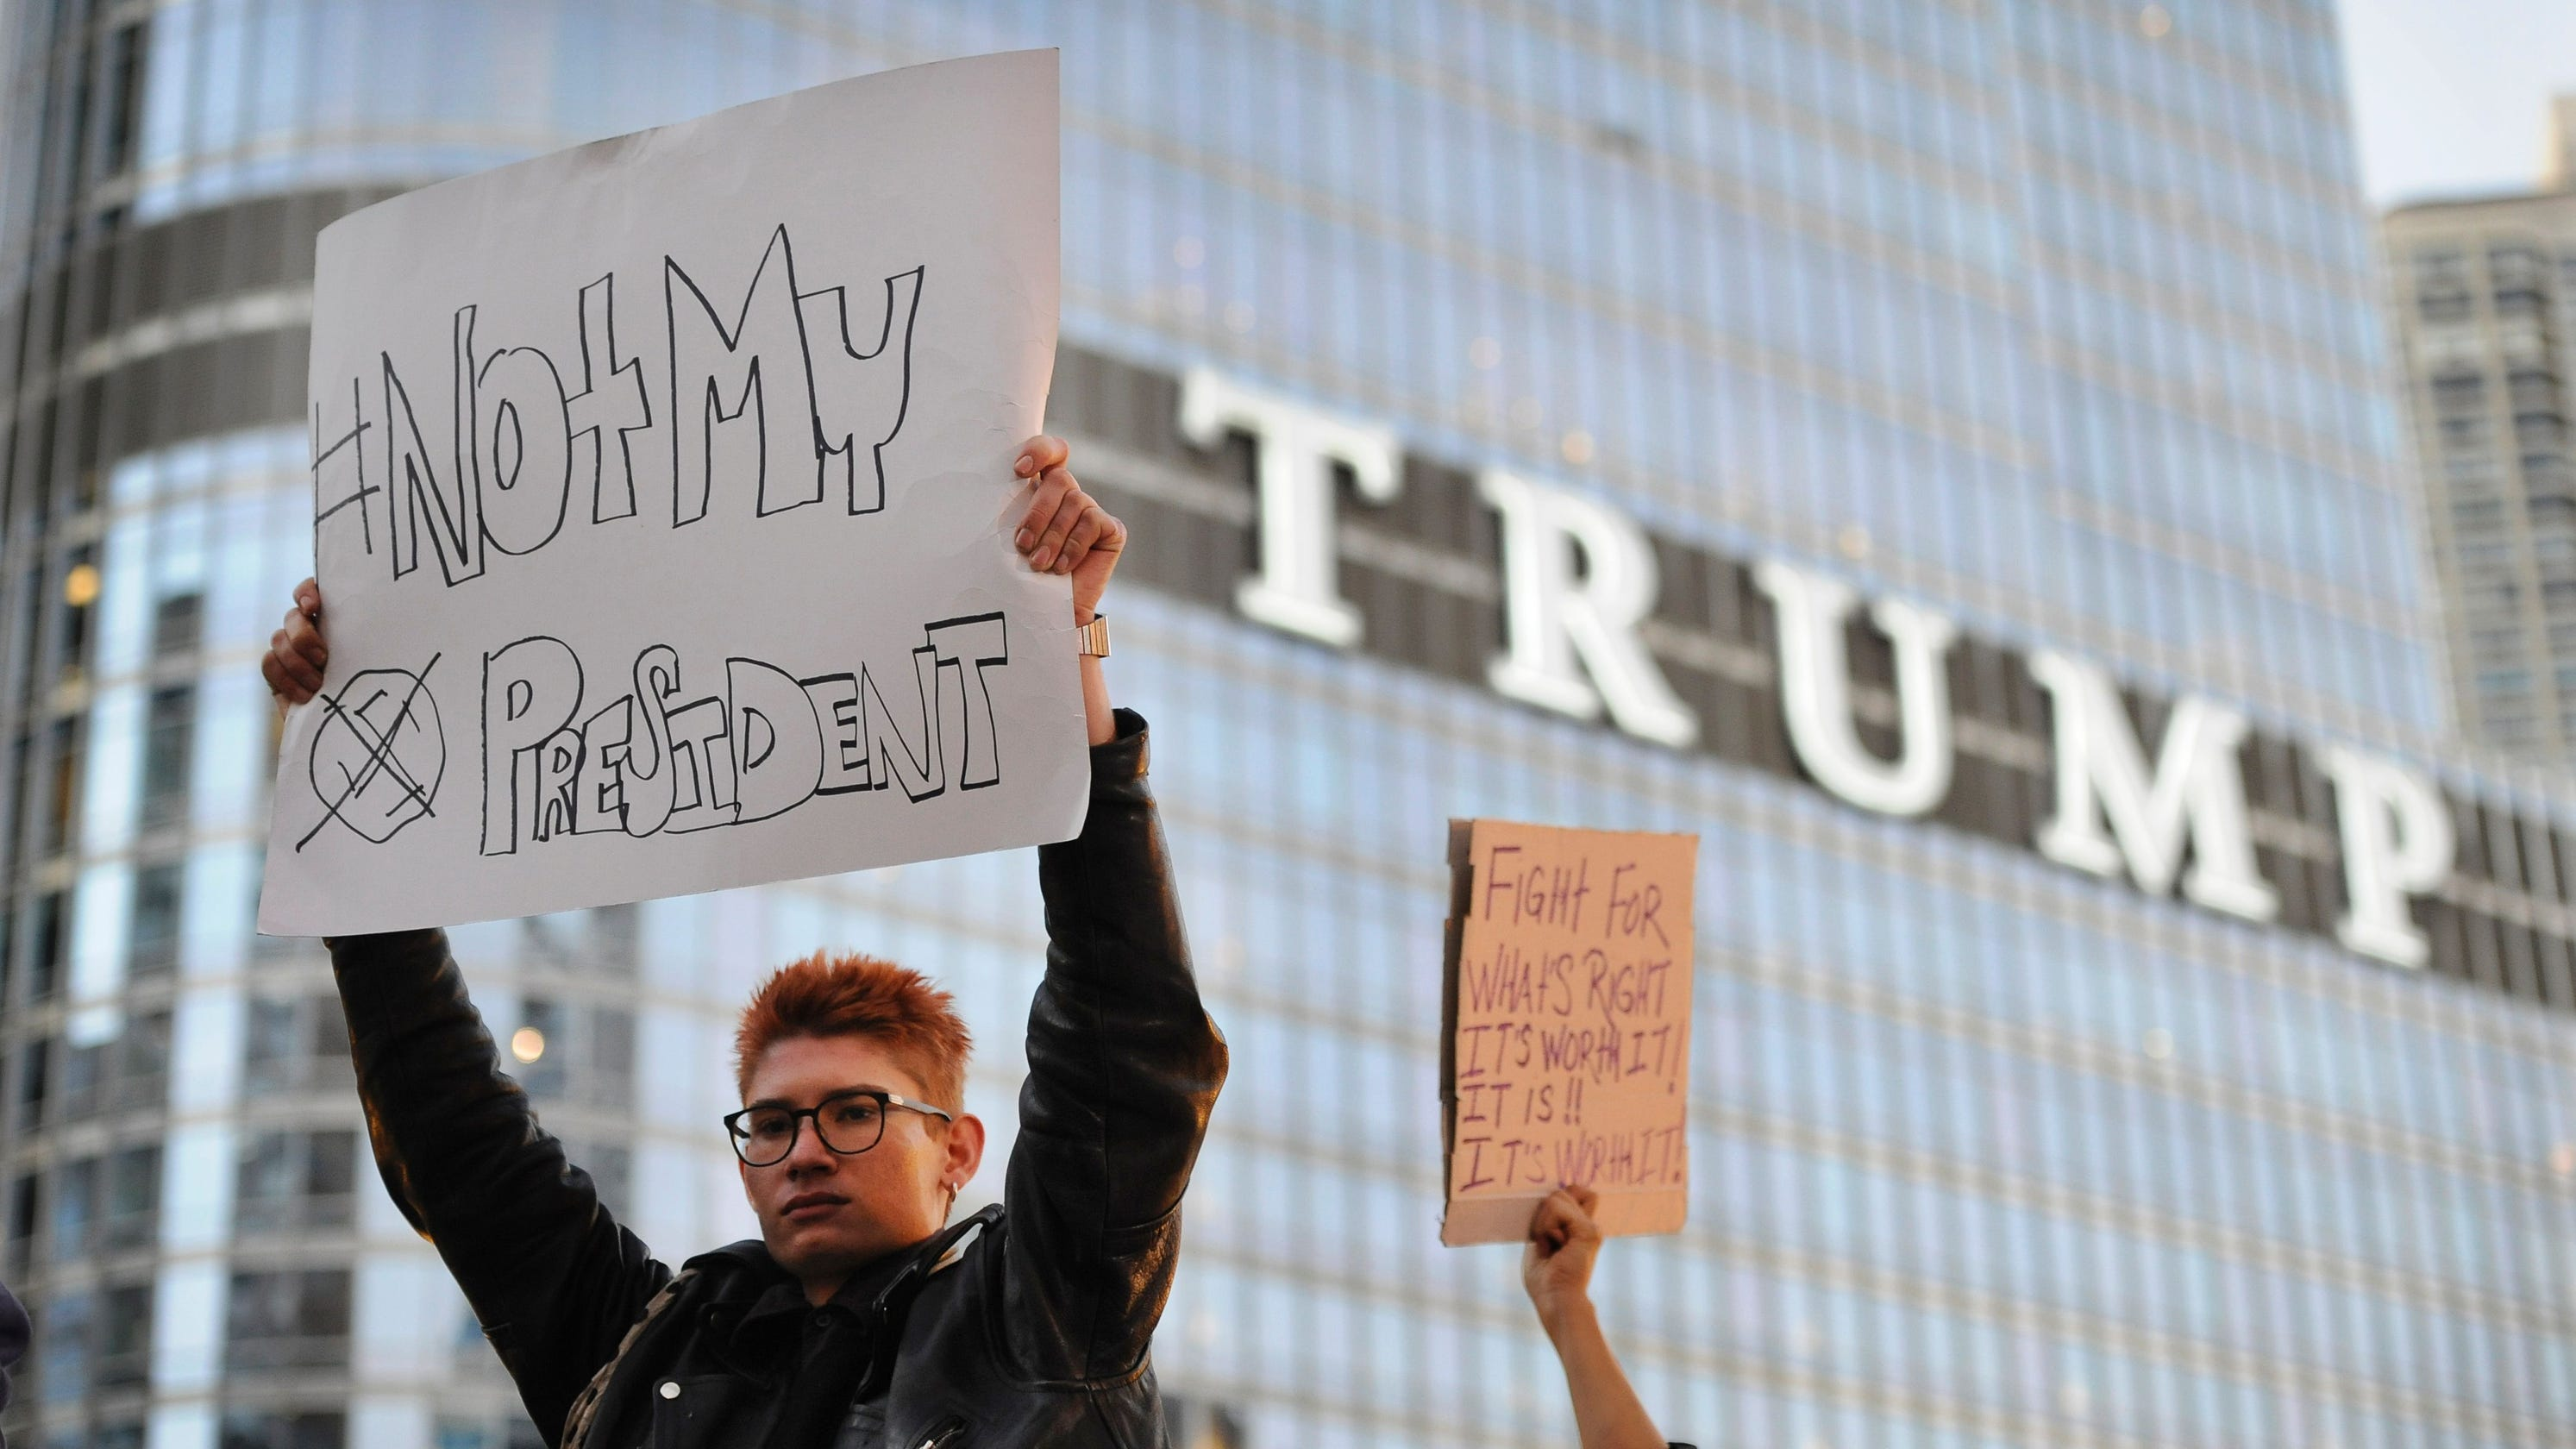 donald-trump-is-visiting-chicago-a-city-hes-called-a-war-zone-but-whats-really-true-about-guns-there.jpg